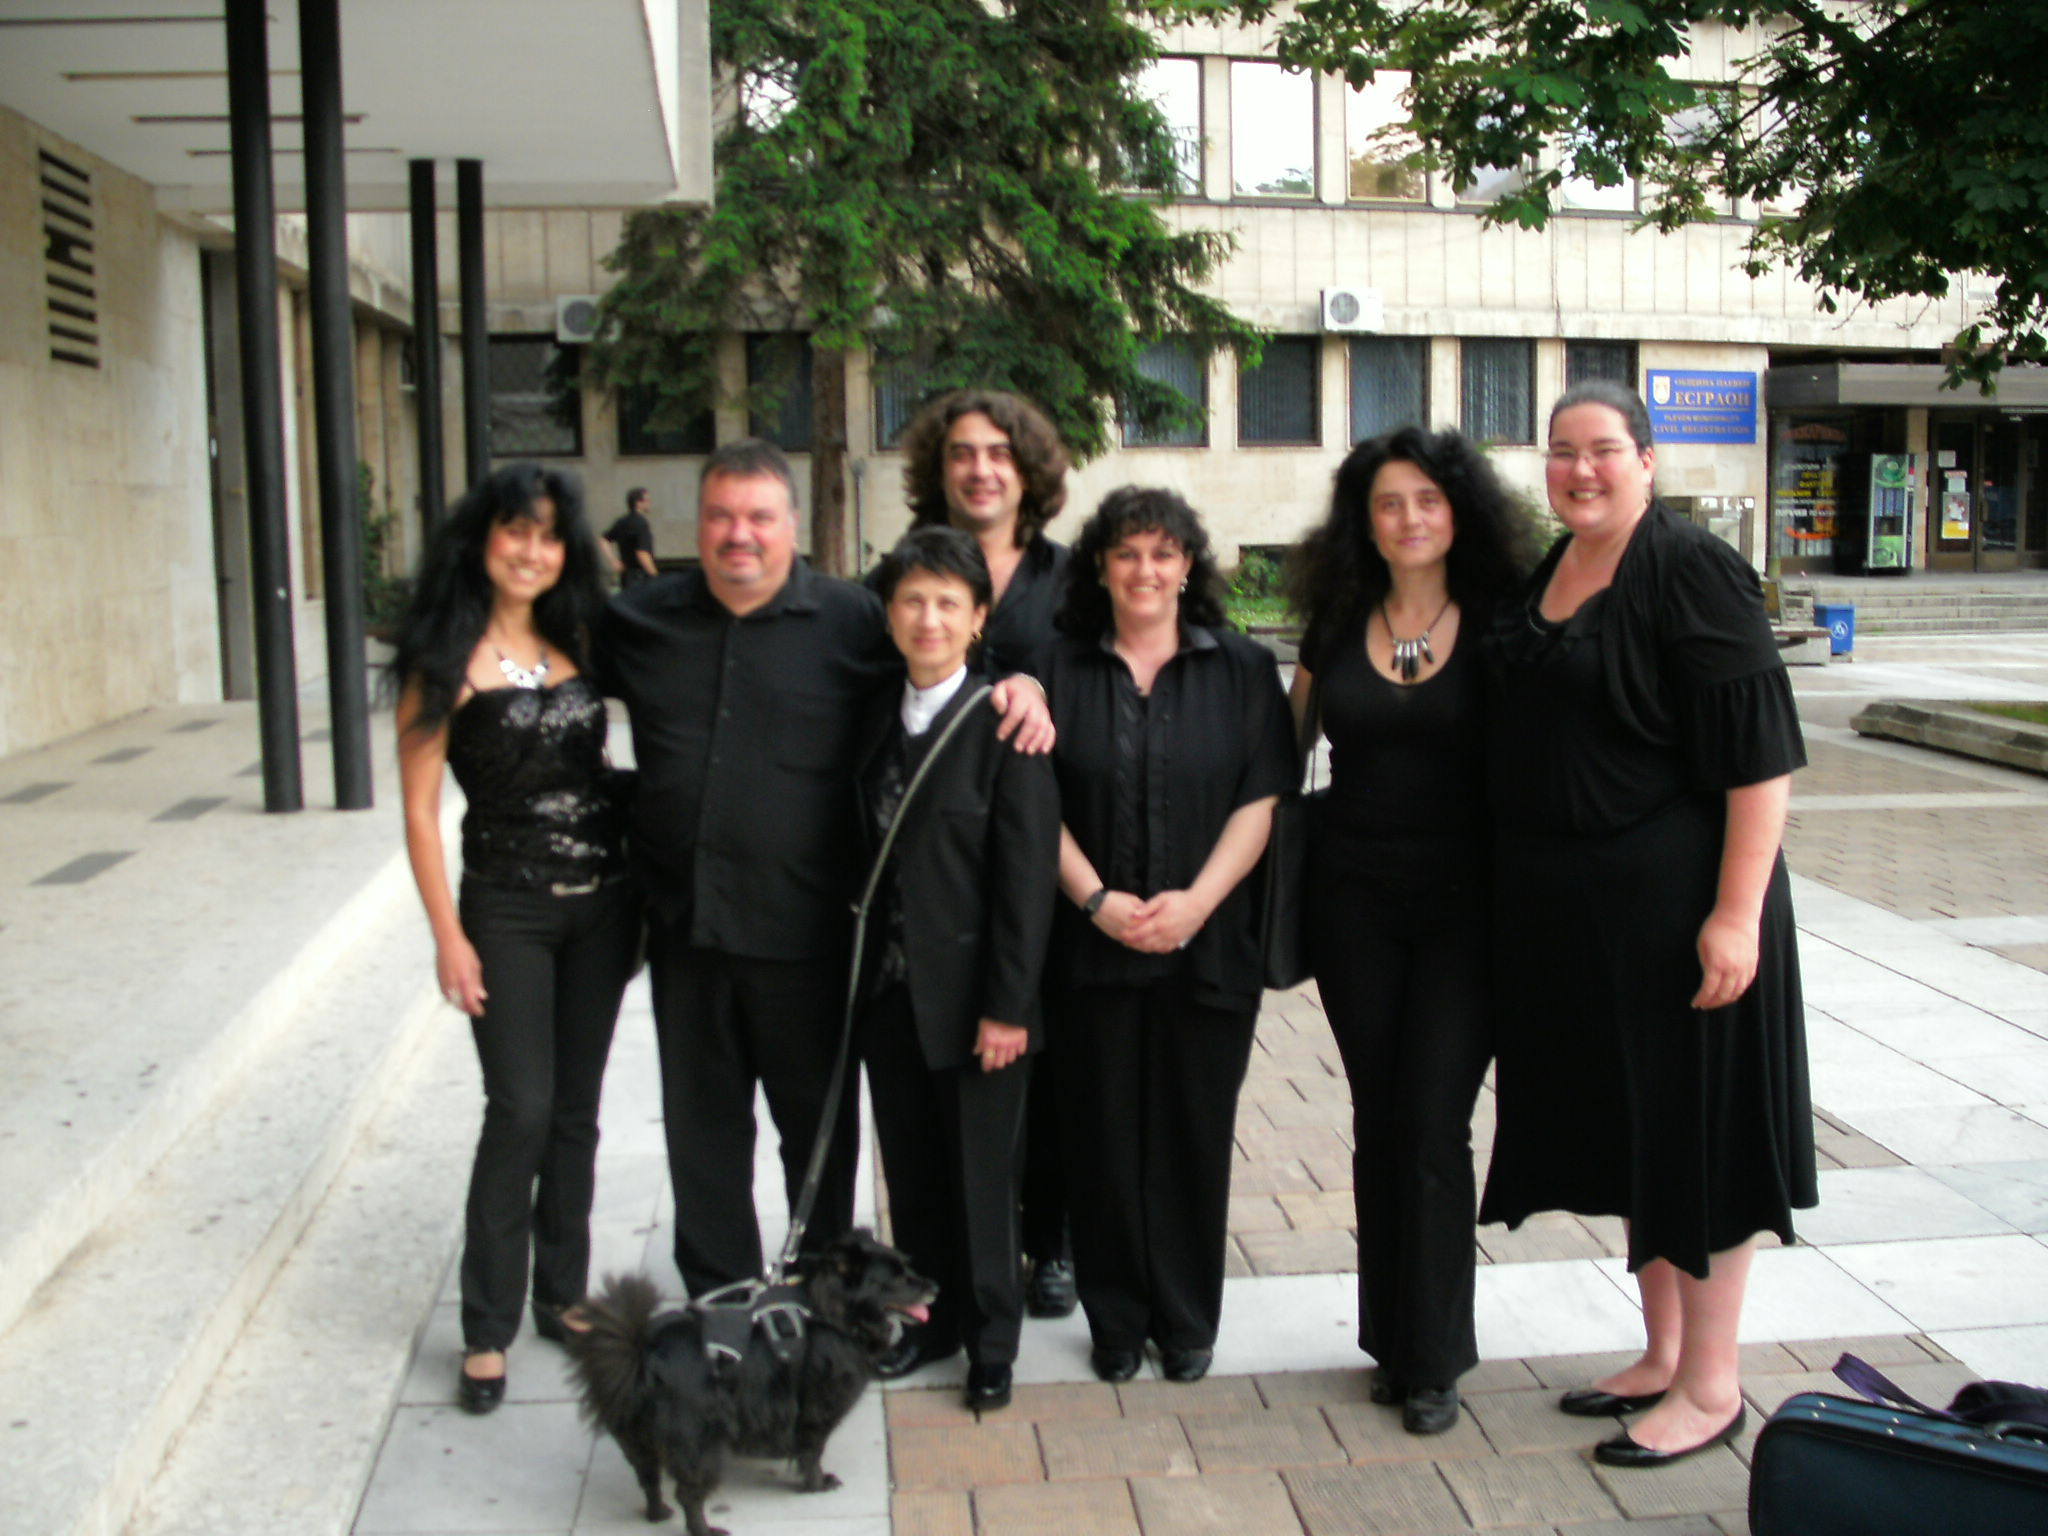 After rehearsal shot of members of the orchestra with Sandra Noriega